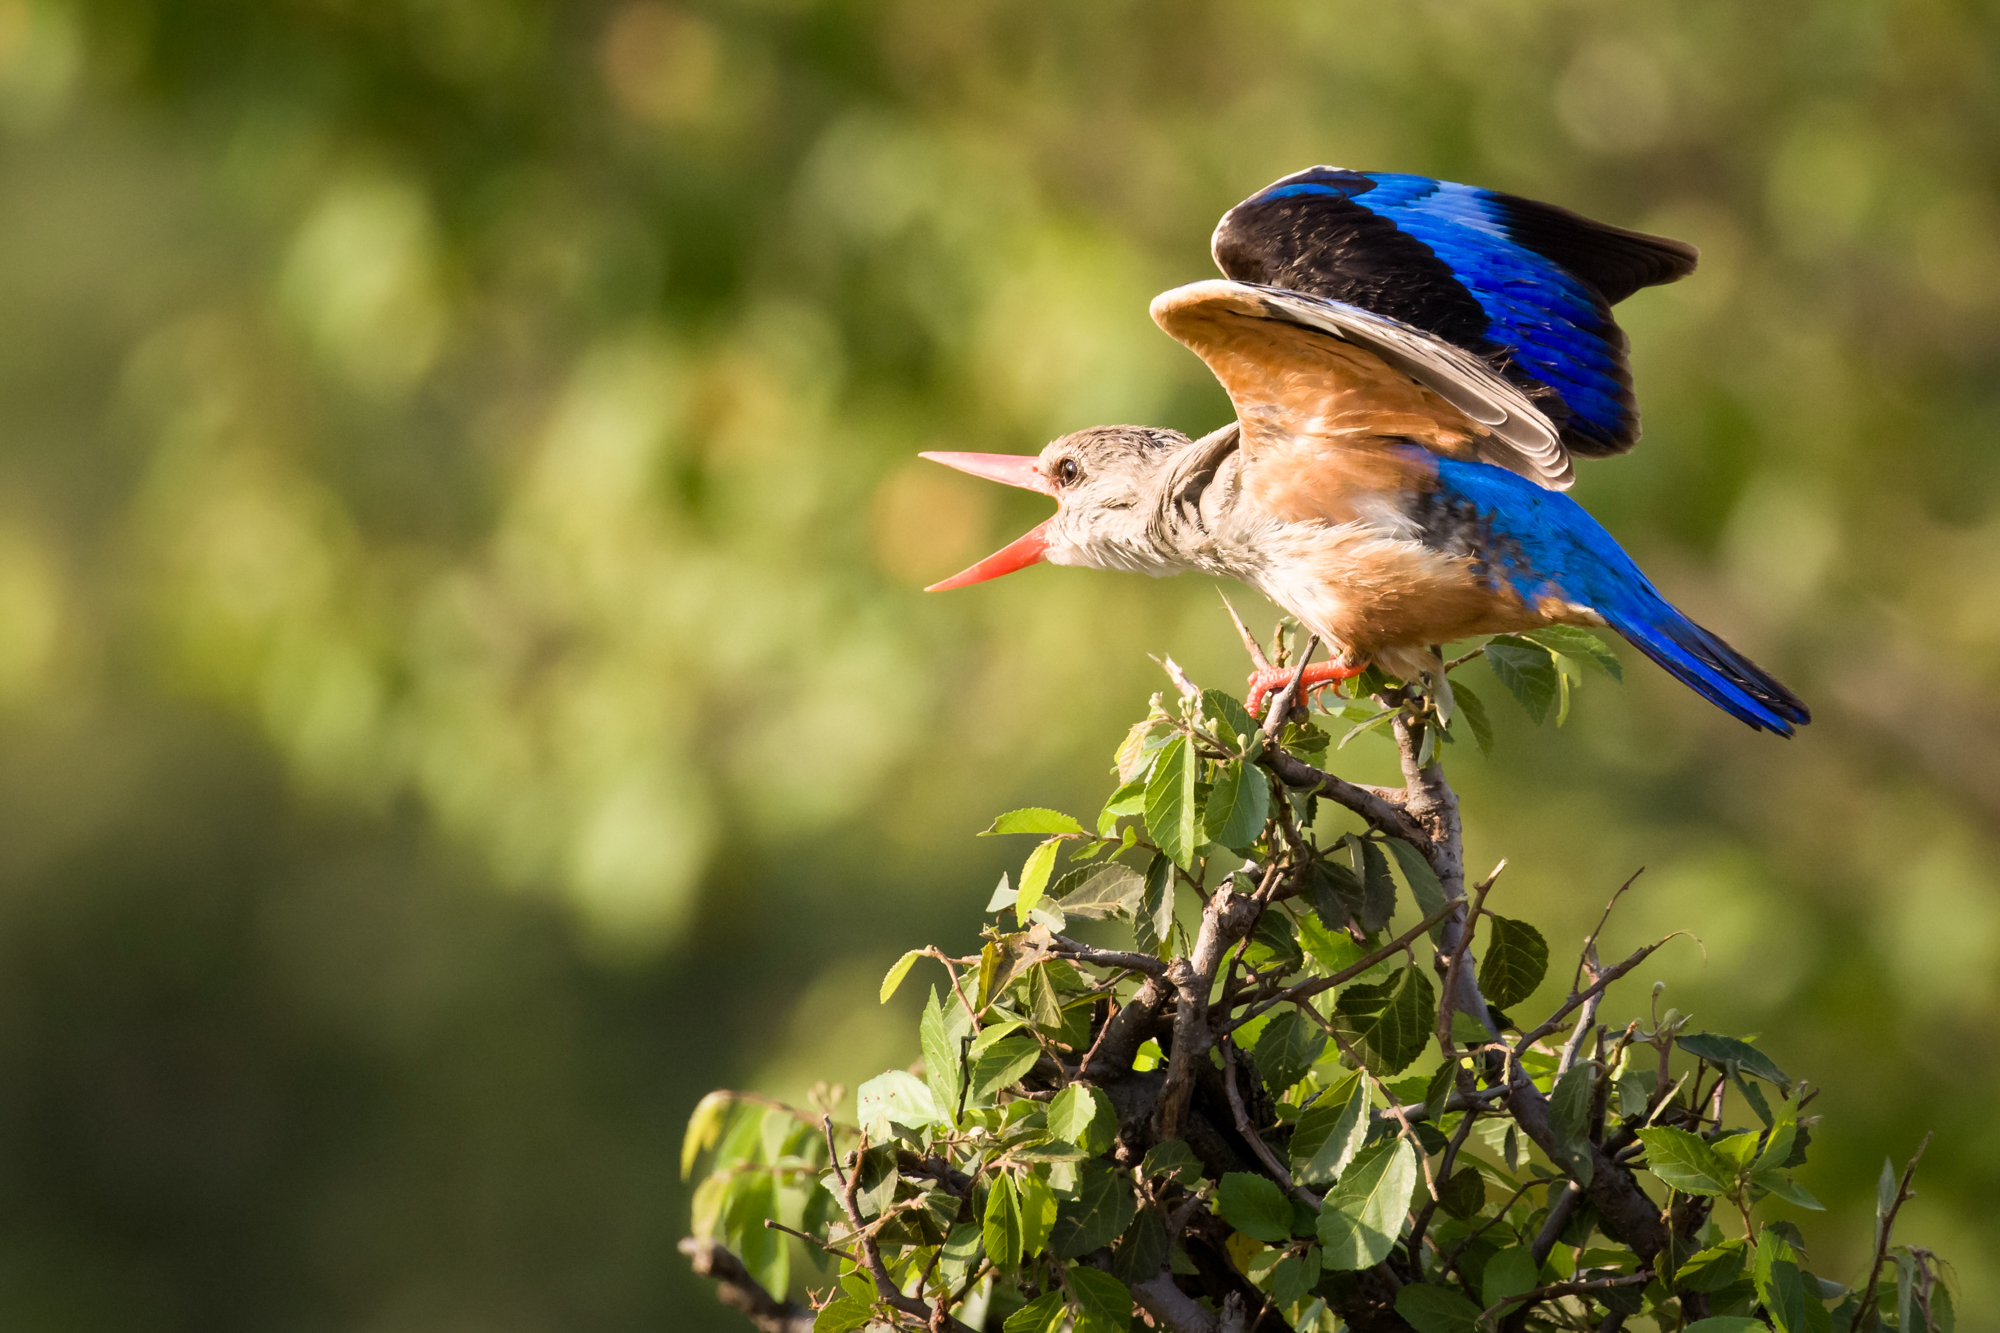 A kingfisher calling out to another bird and flapping its wings